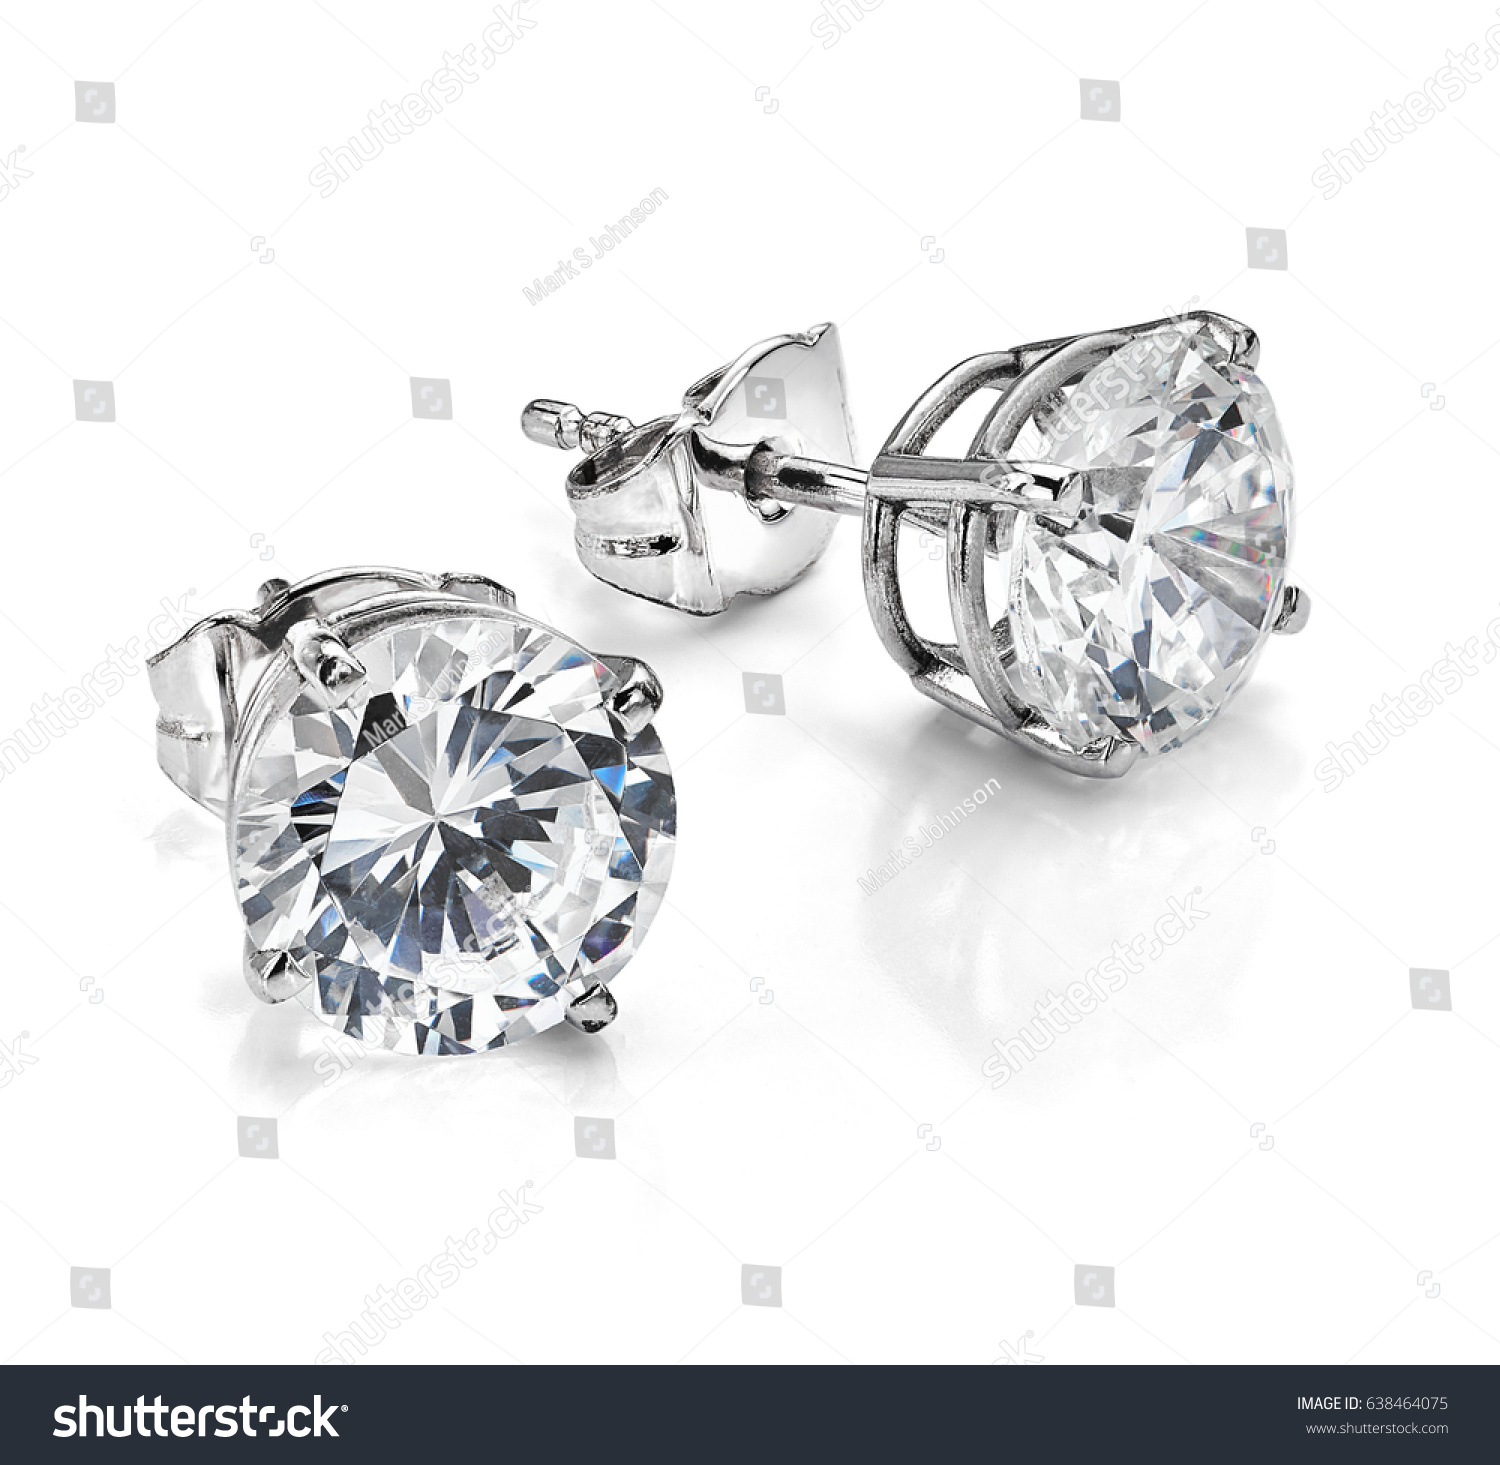 pictures unusual platinum heart diamond full large rose samuel classic ring bands jewelry wedding half princess white size jewelers gemstone carat art promise silver shaped best mens gold jewellery of cut black elegant designer blue solitaire sets engagement rings band fashion expensive big eternity